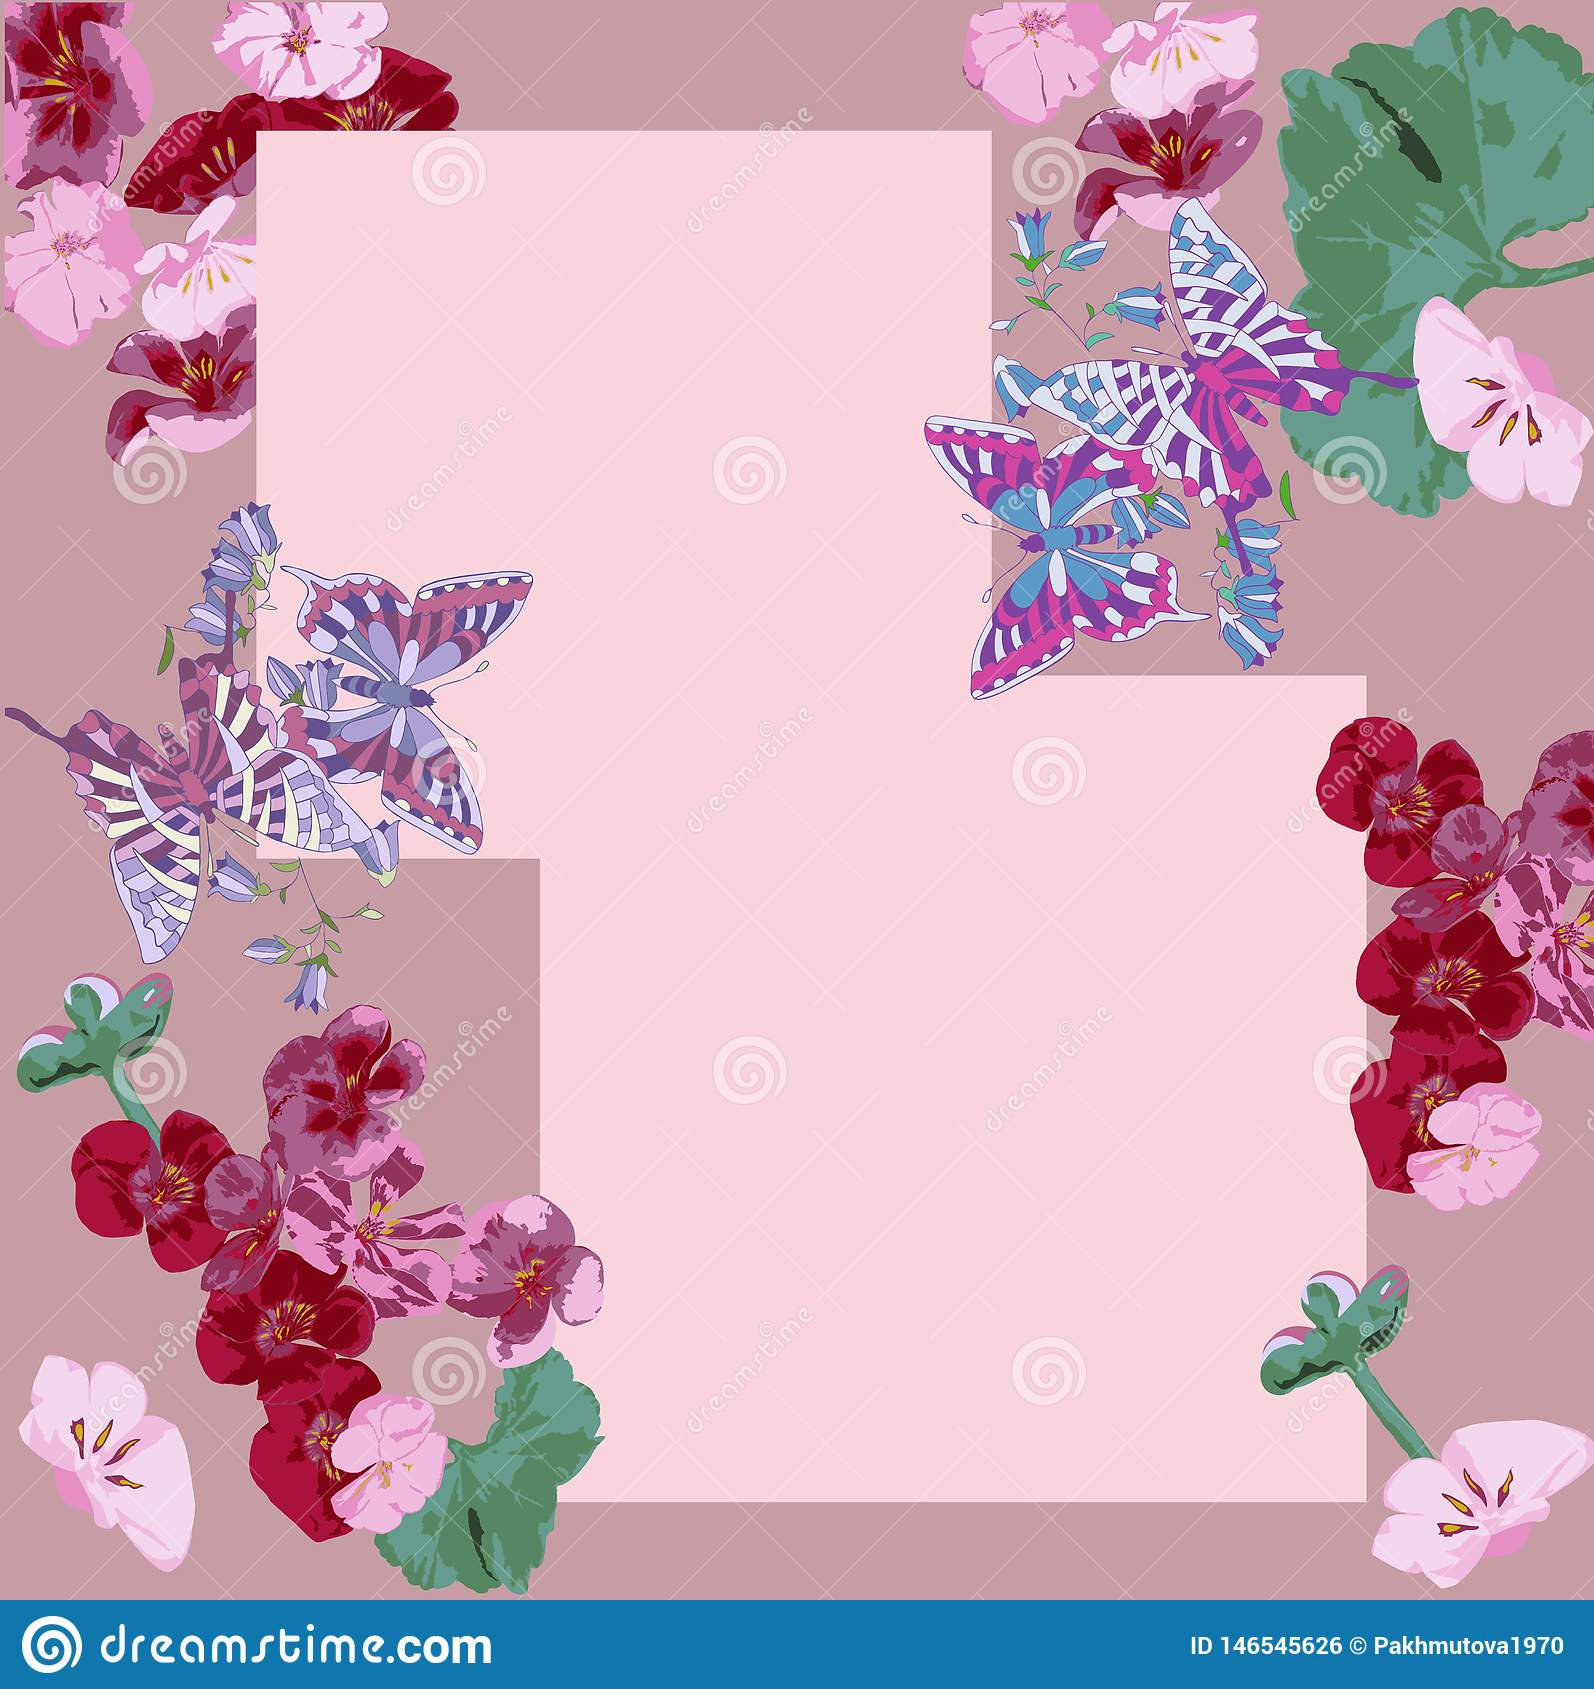 Pattern, flower, floral, seamless, abstract, butterfly, decoration, pink, flowers, design, illustration, nature, white, red, art,